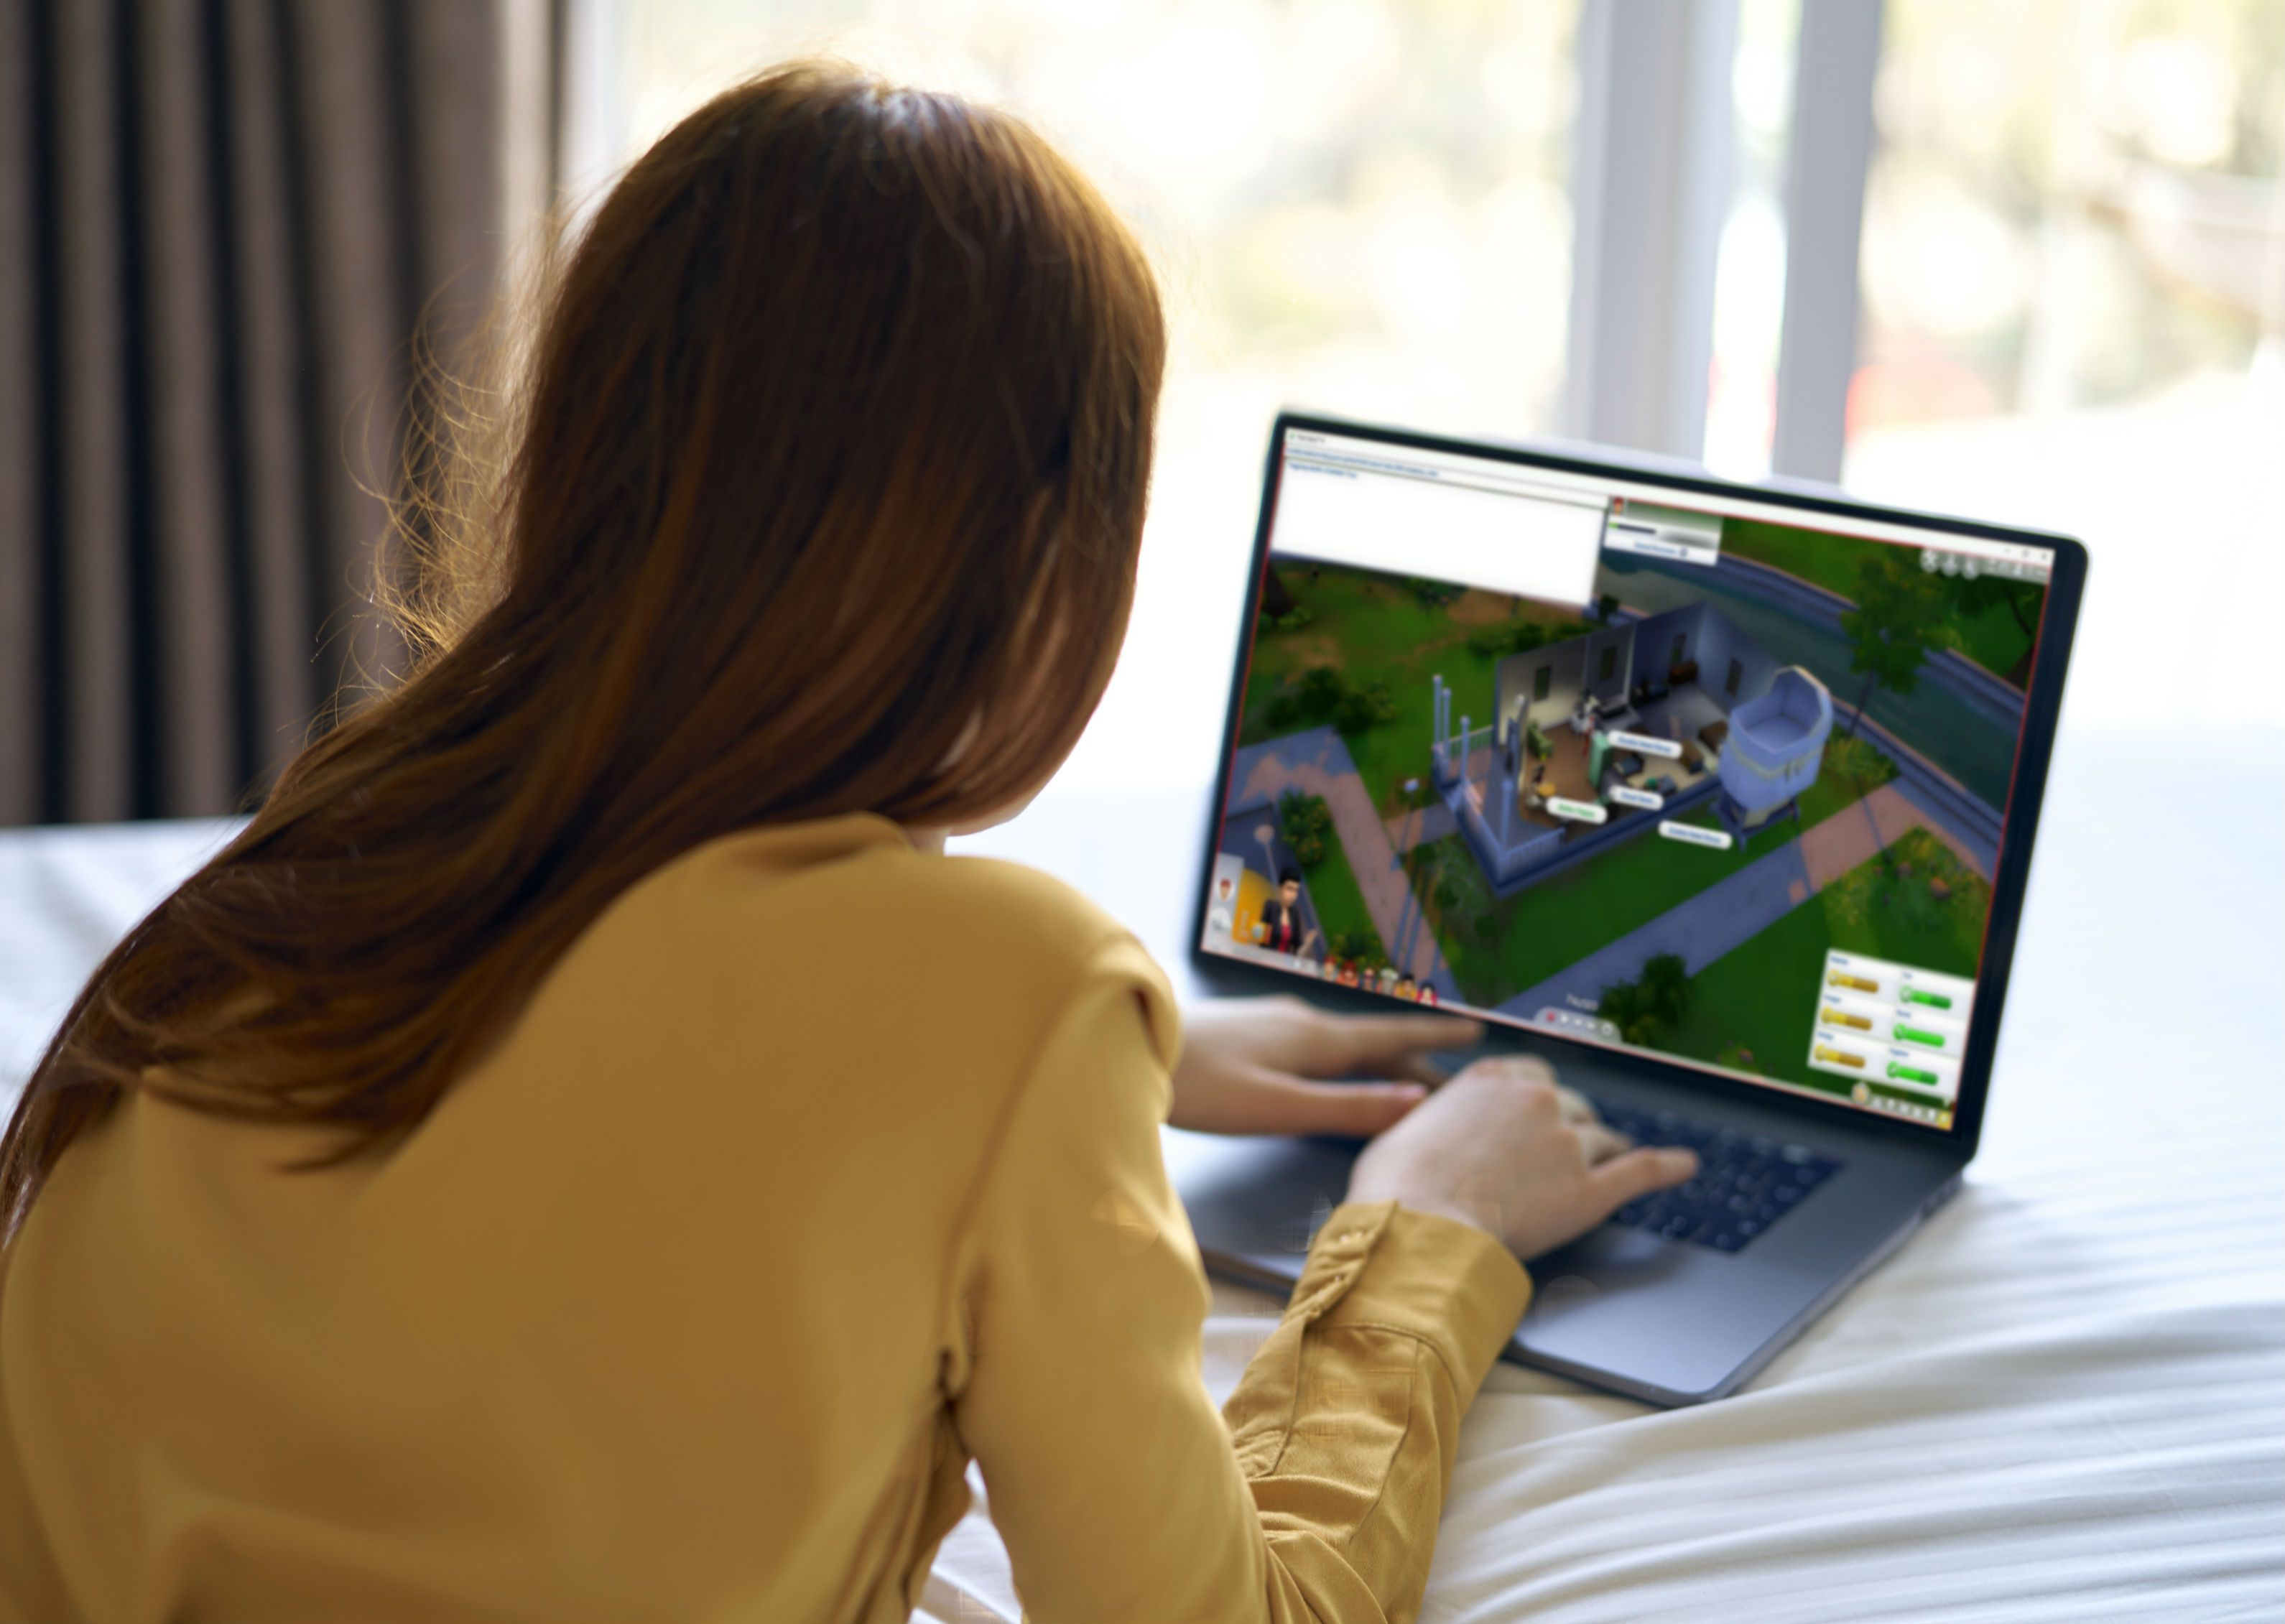 Sims 4 Cheats, Cheat Codes, and Walkthroughs For Your PC